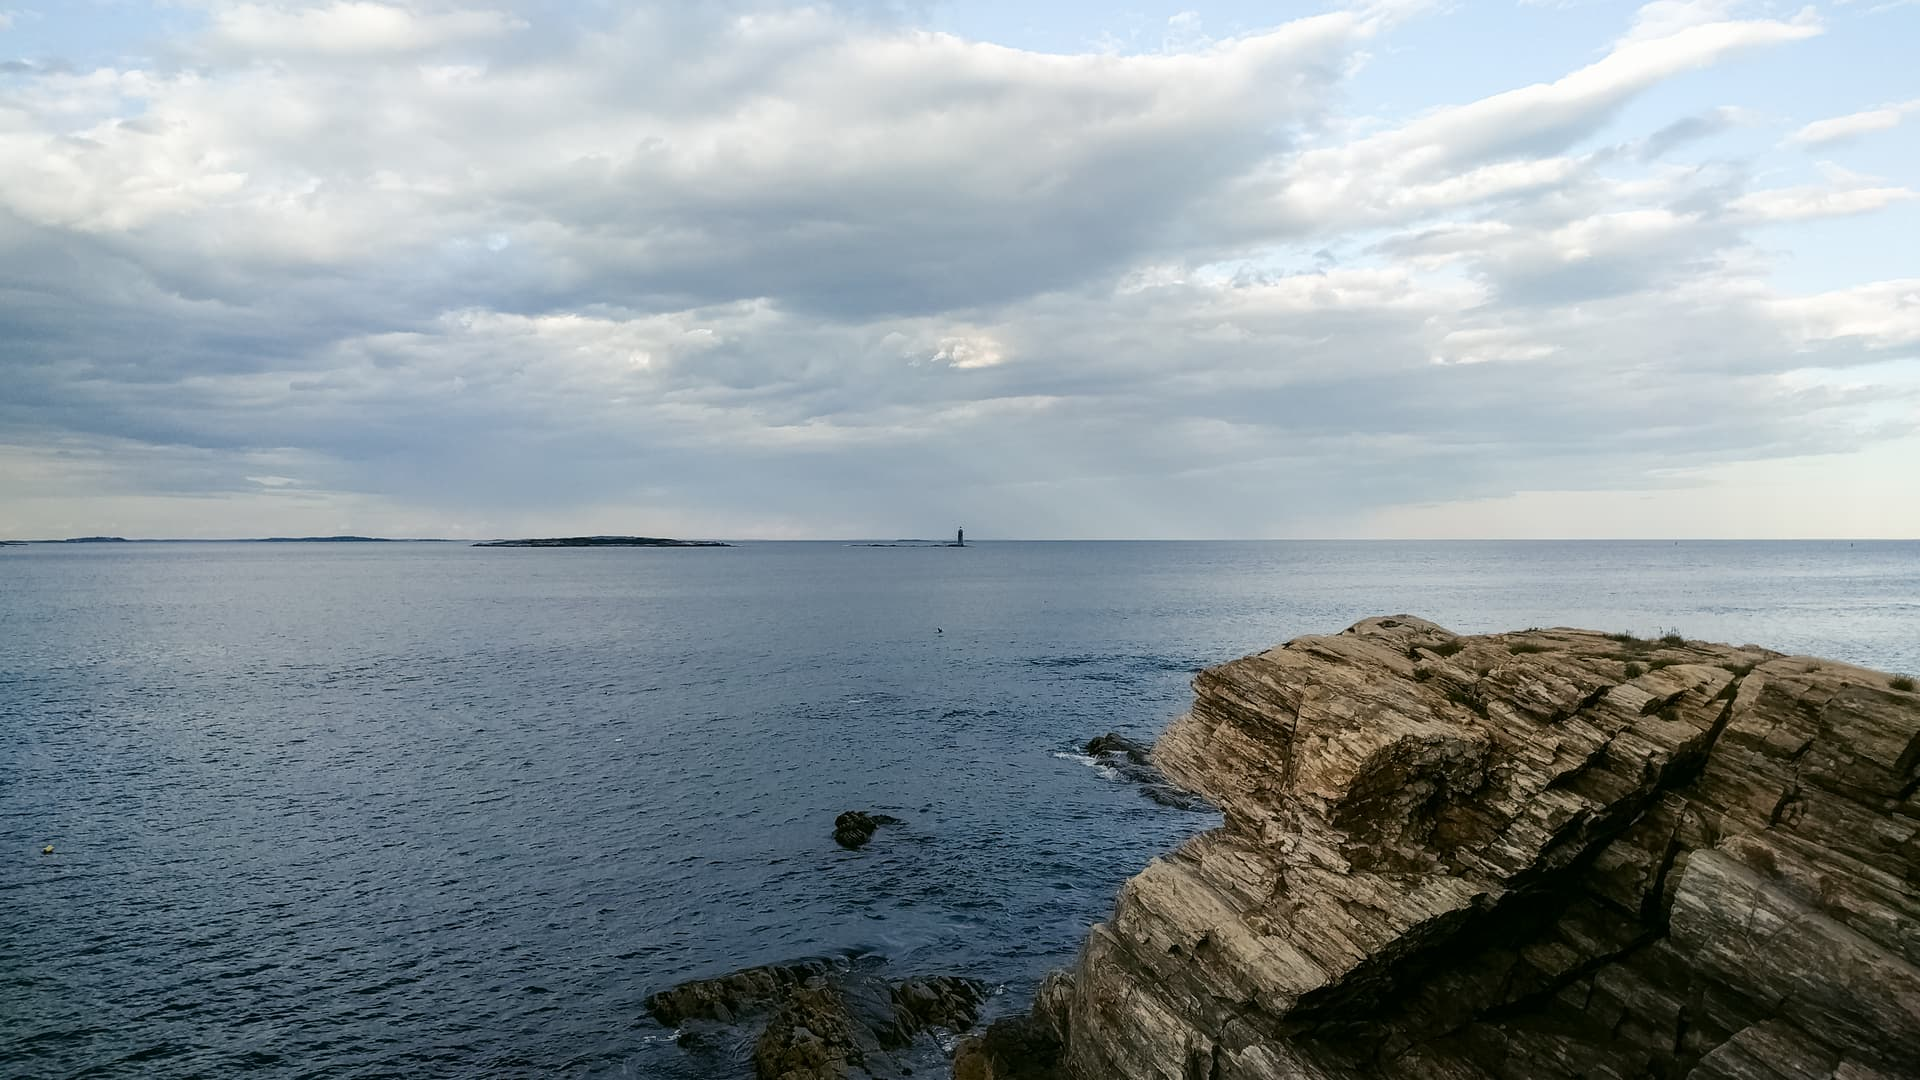 Looking out over the Atlantic Ocean from a rocky Maine beach. A lighthouse can barely be seen in the distance near the center of the frame; behind it, on the horizon, rain.